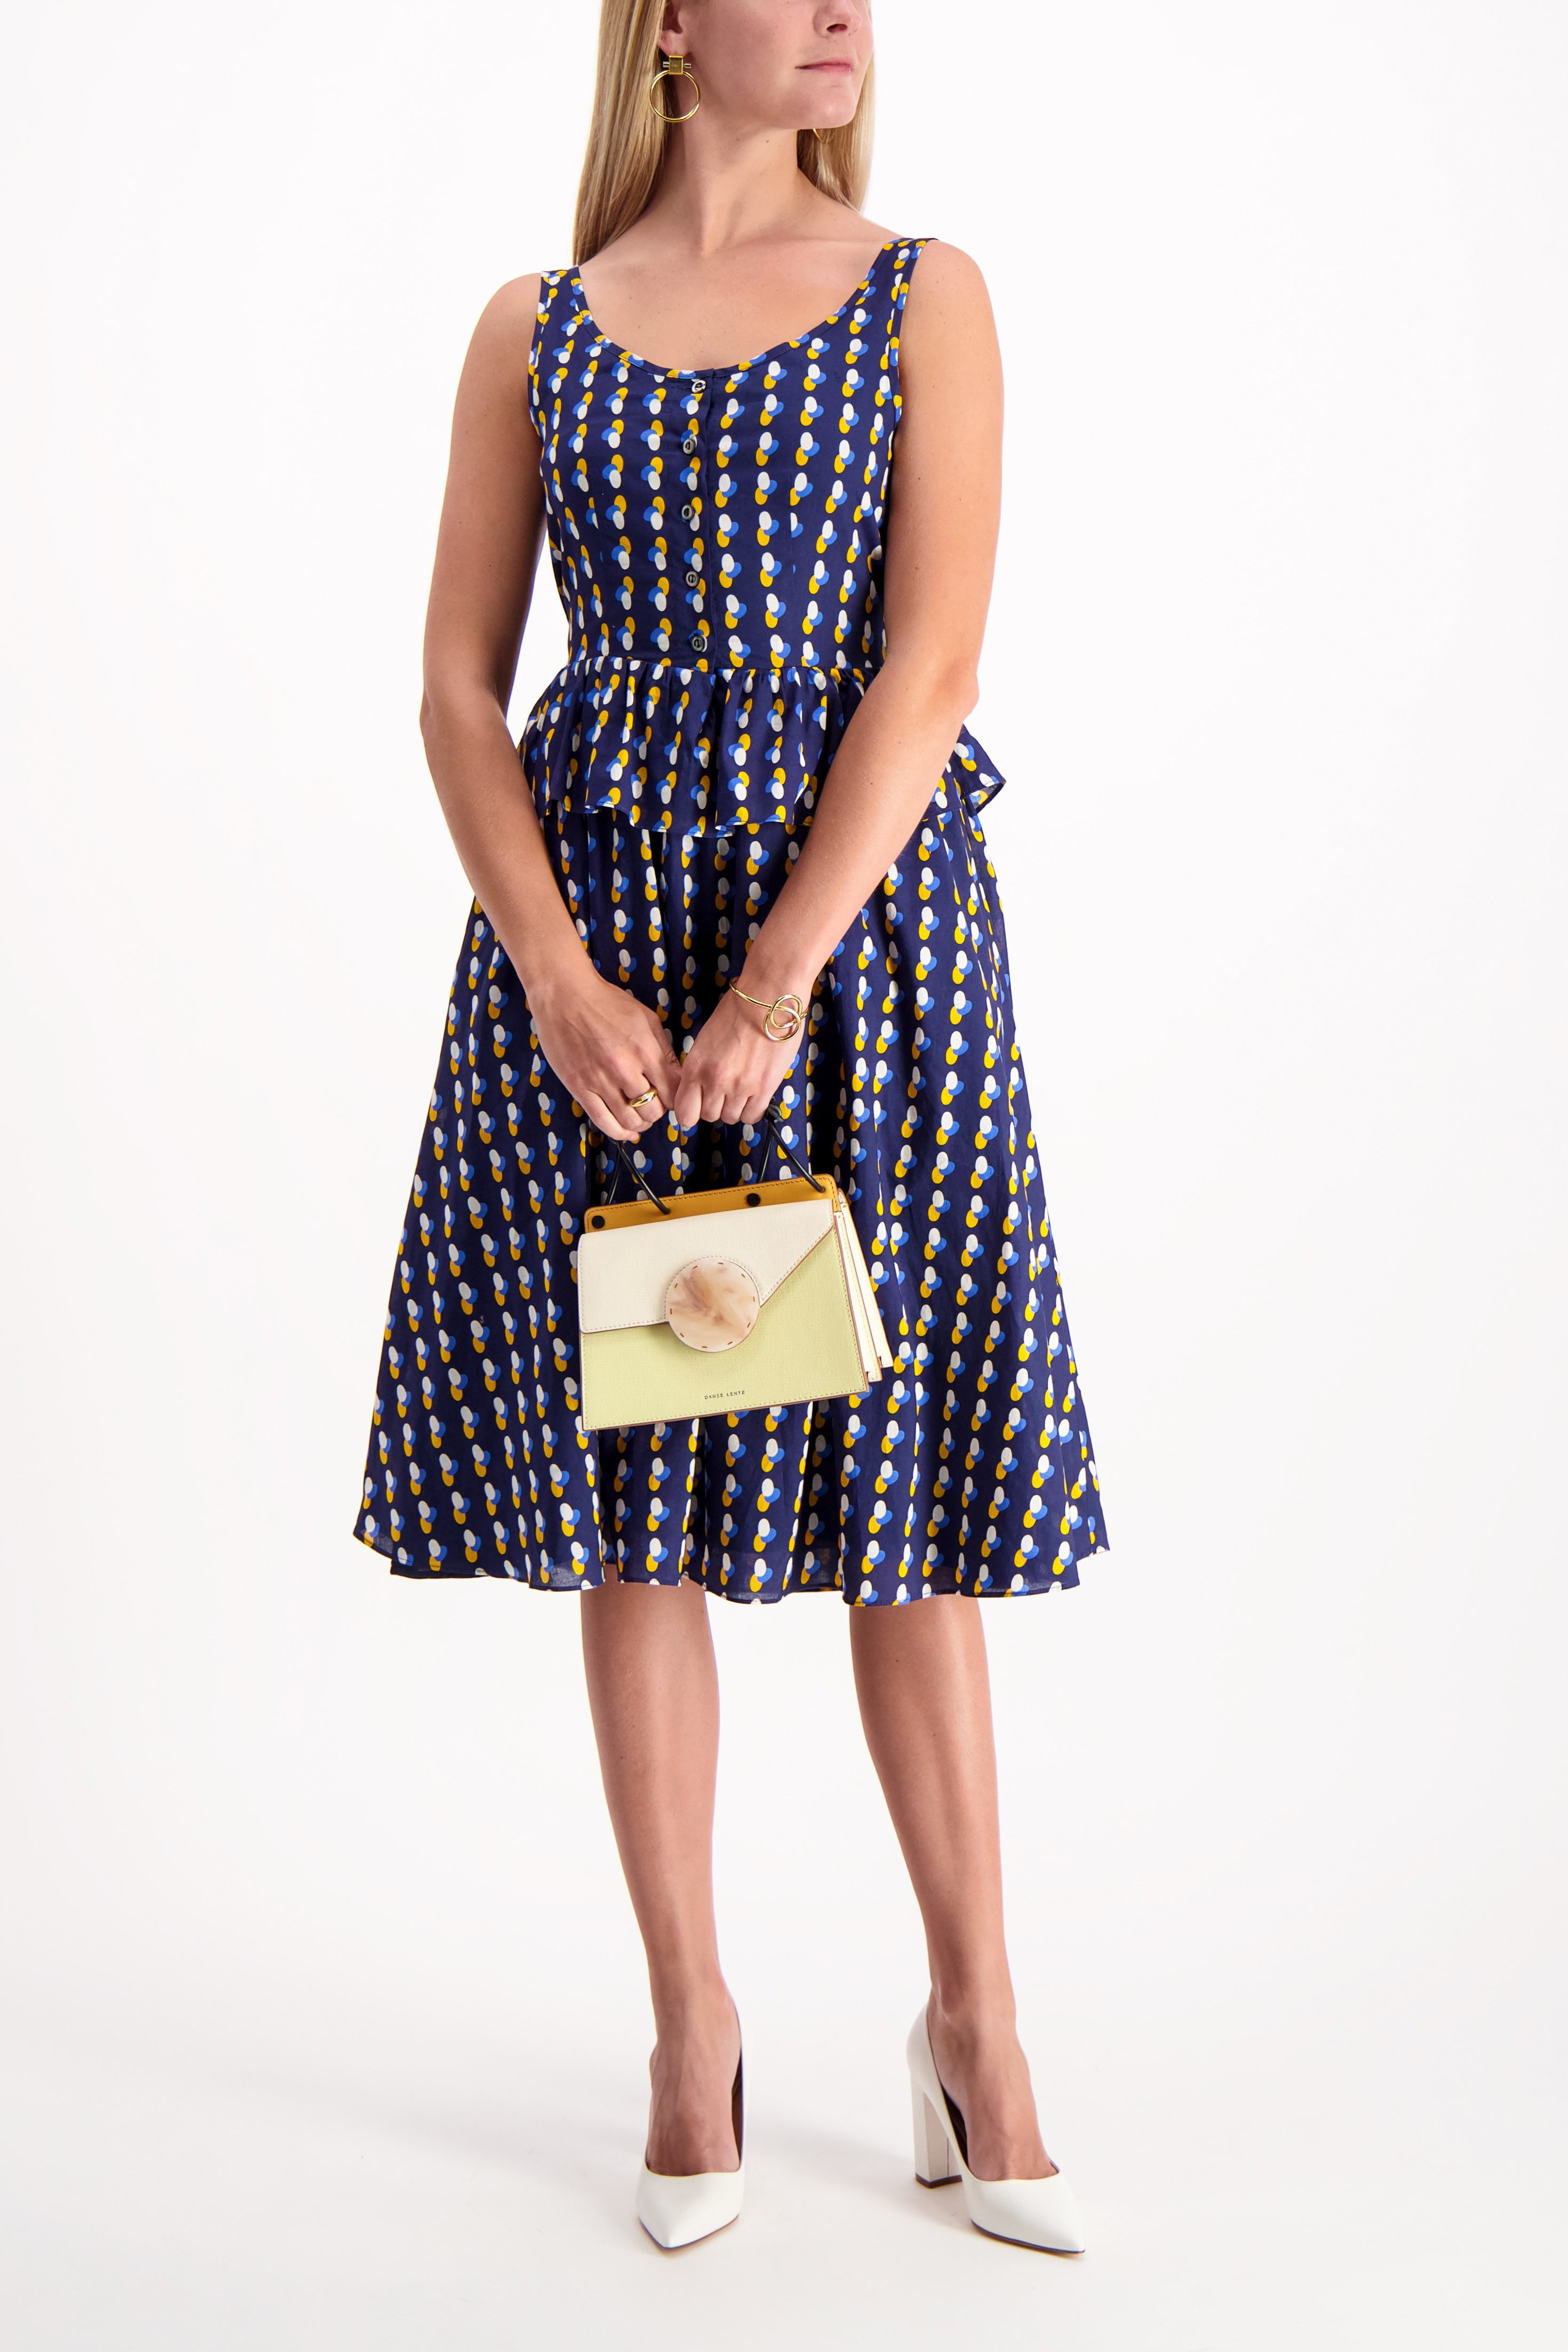 Full Body Image Of Model Wearing A.P.C. Murano Dress